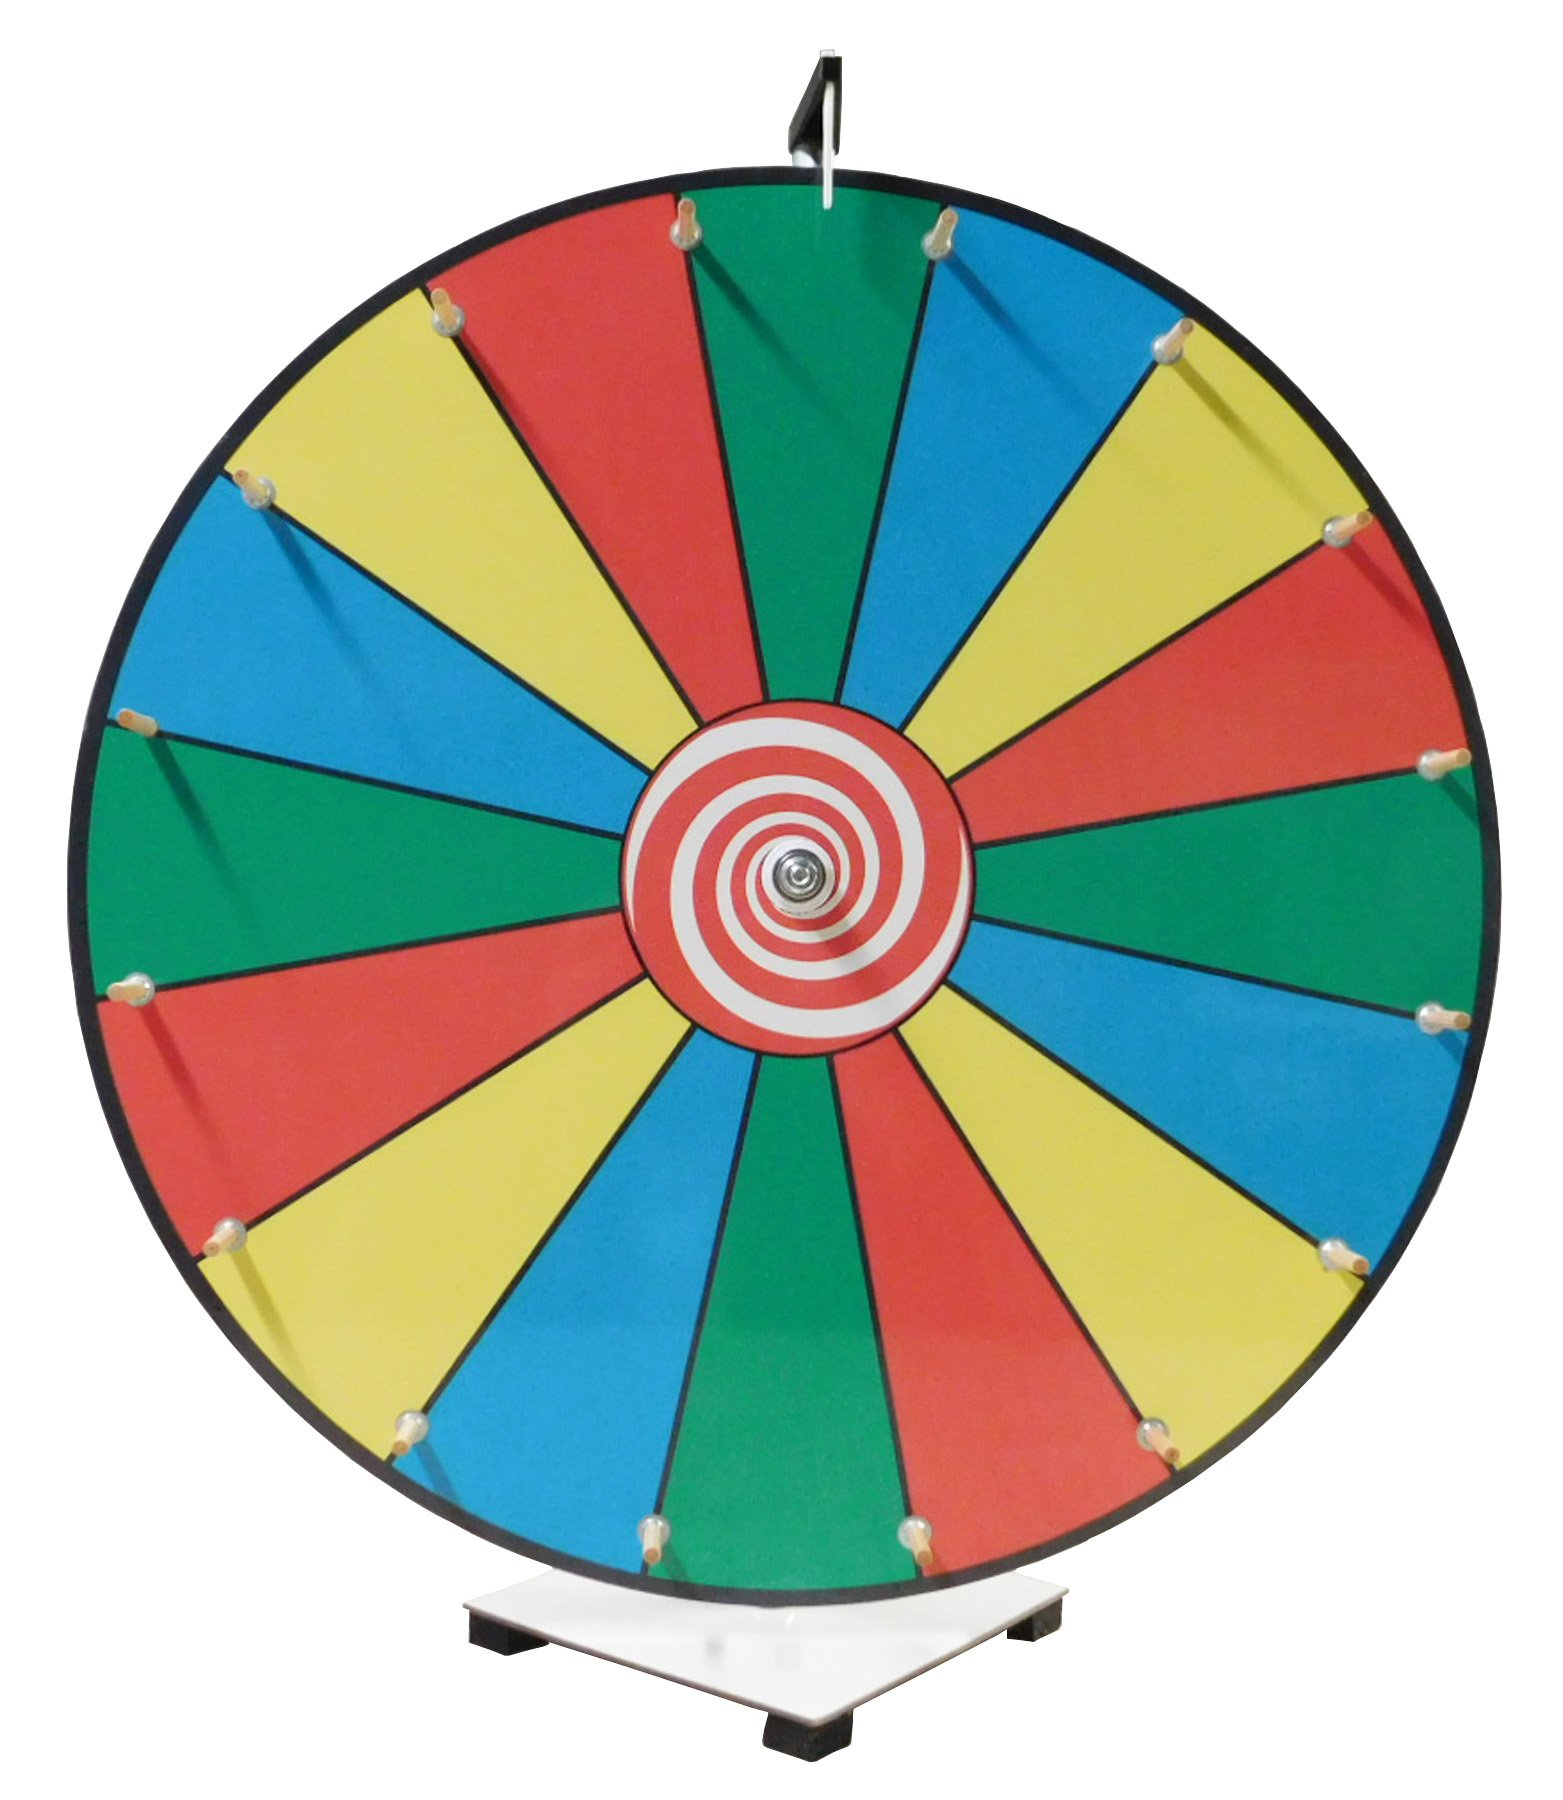 Prize Wheel 24 inch Dry Erase Color Face Classic Wooden Peg Design